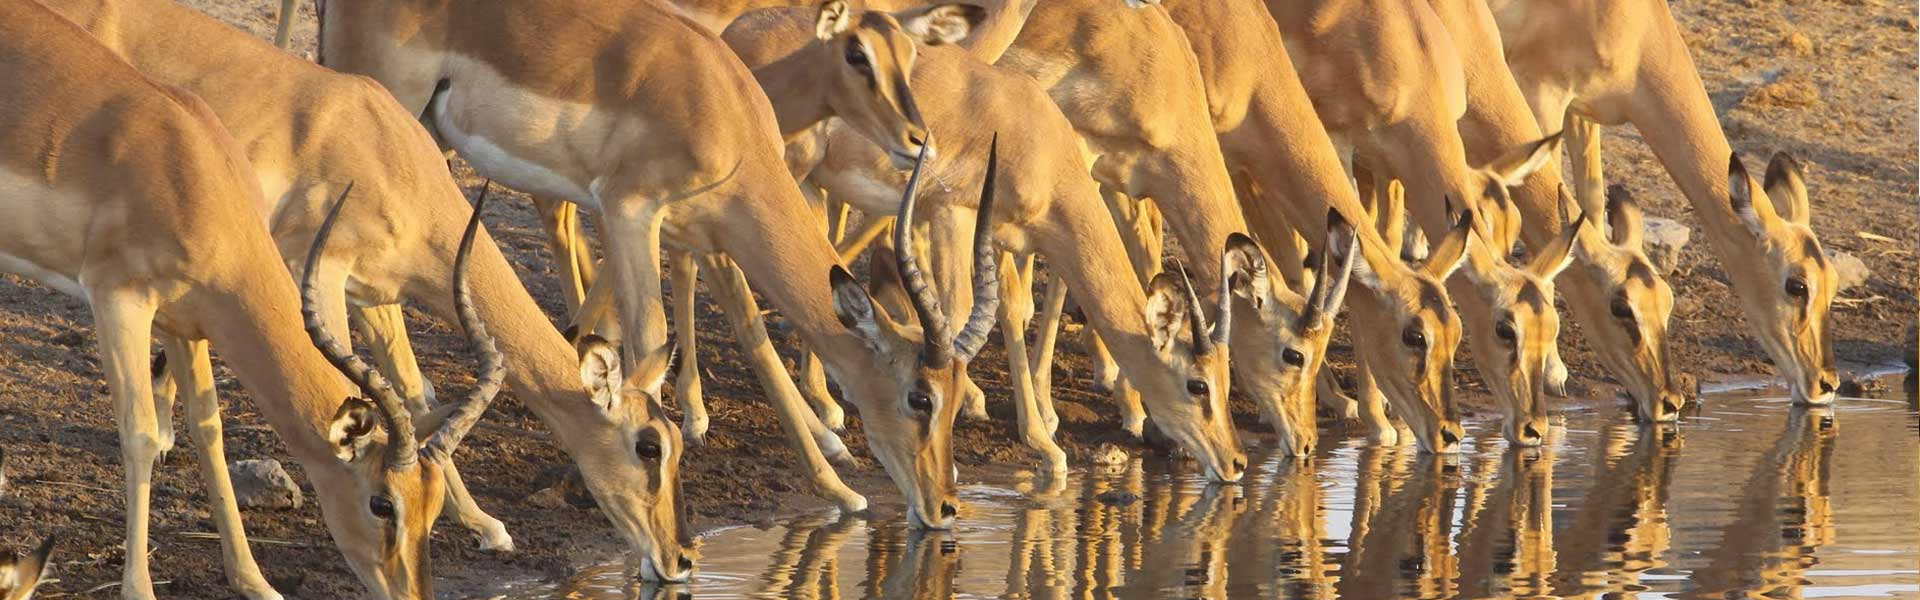 Waterhole in Namibia's Etosha National Park with buck drinking